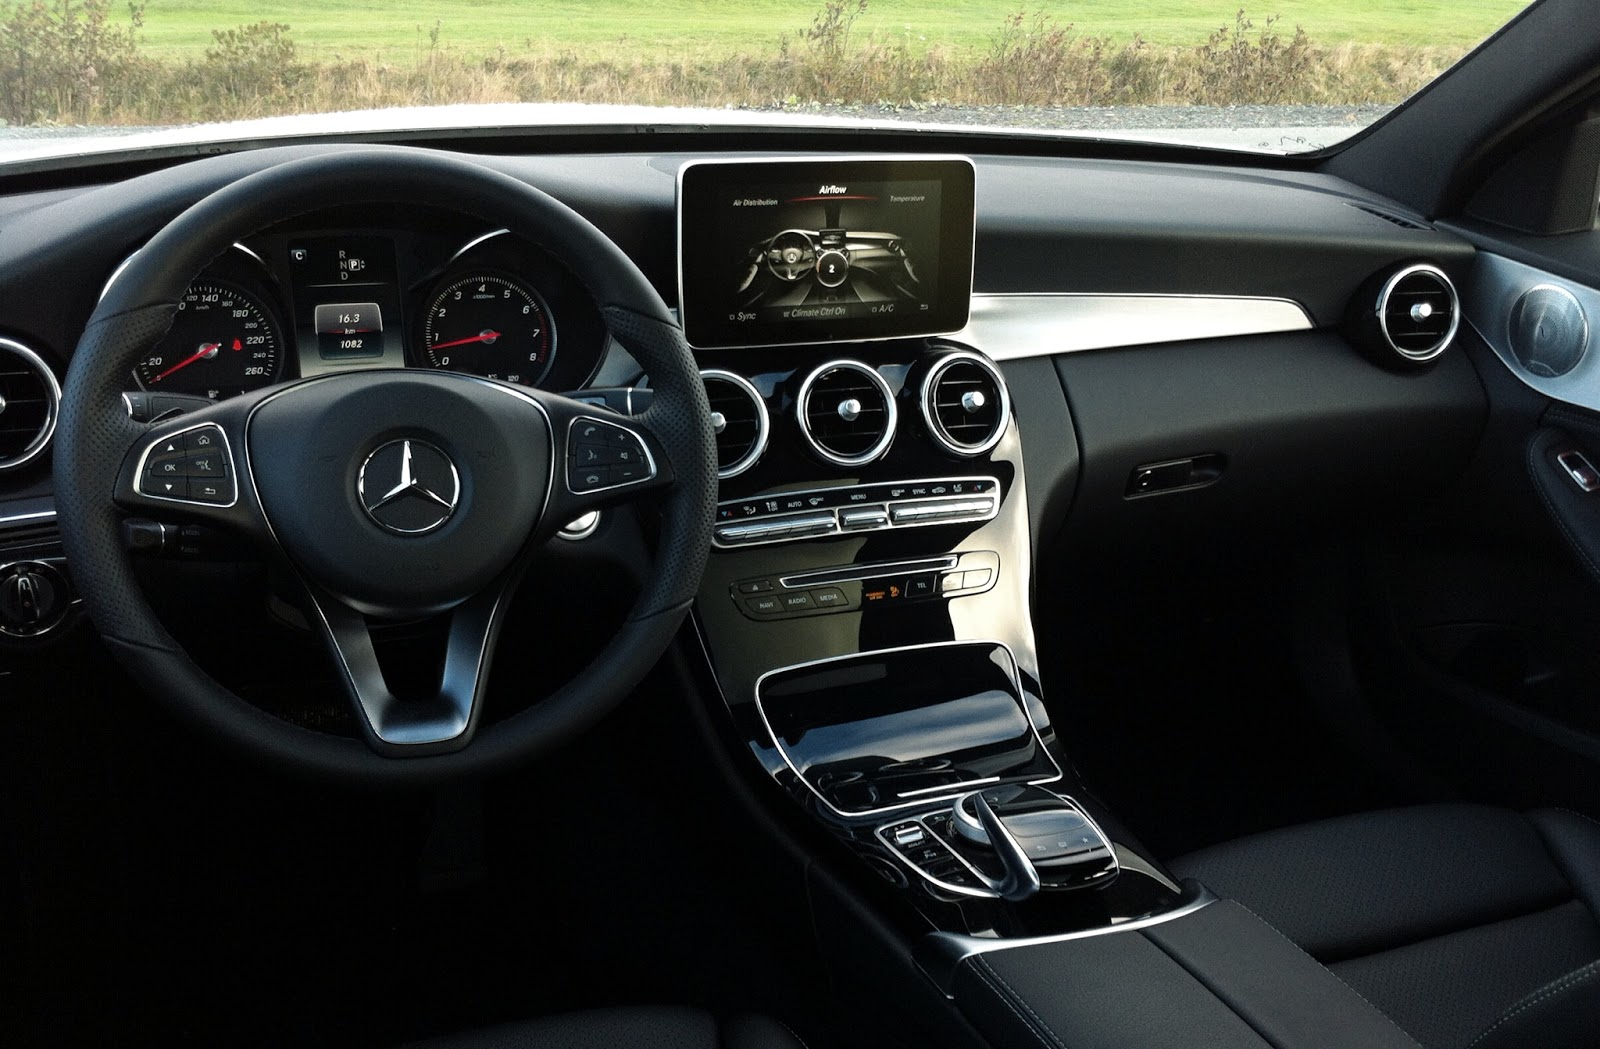 2015 mercedes benz c400 4matic review an actual luxury for Mercedes benz c class 2015 interior